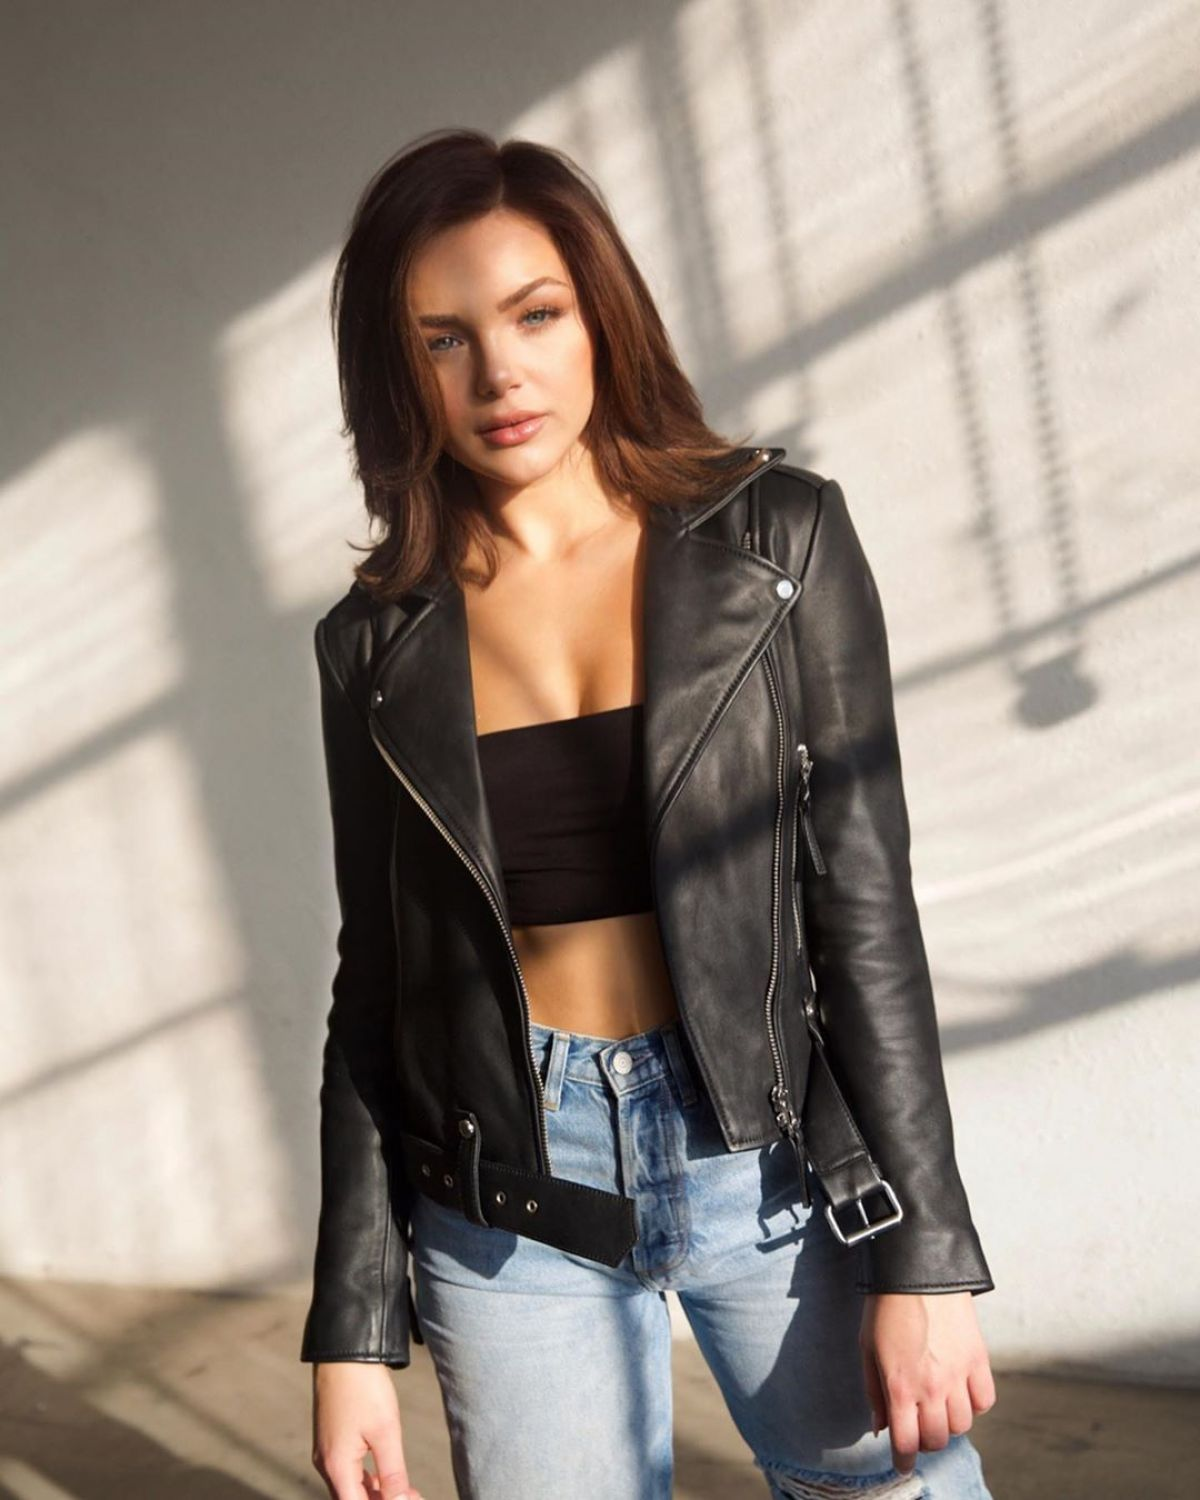 Oana Gregory In Ripped Denim And Leather Jacket Instagram Photos 02 27 2020 Ripped Denim Leather Jacket Girl Leather Jacket [ 1500 x 1200 Pixel ]